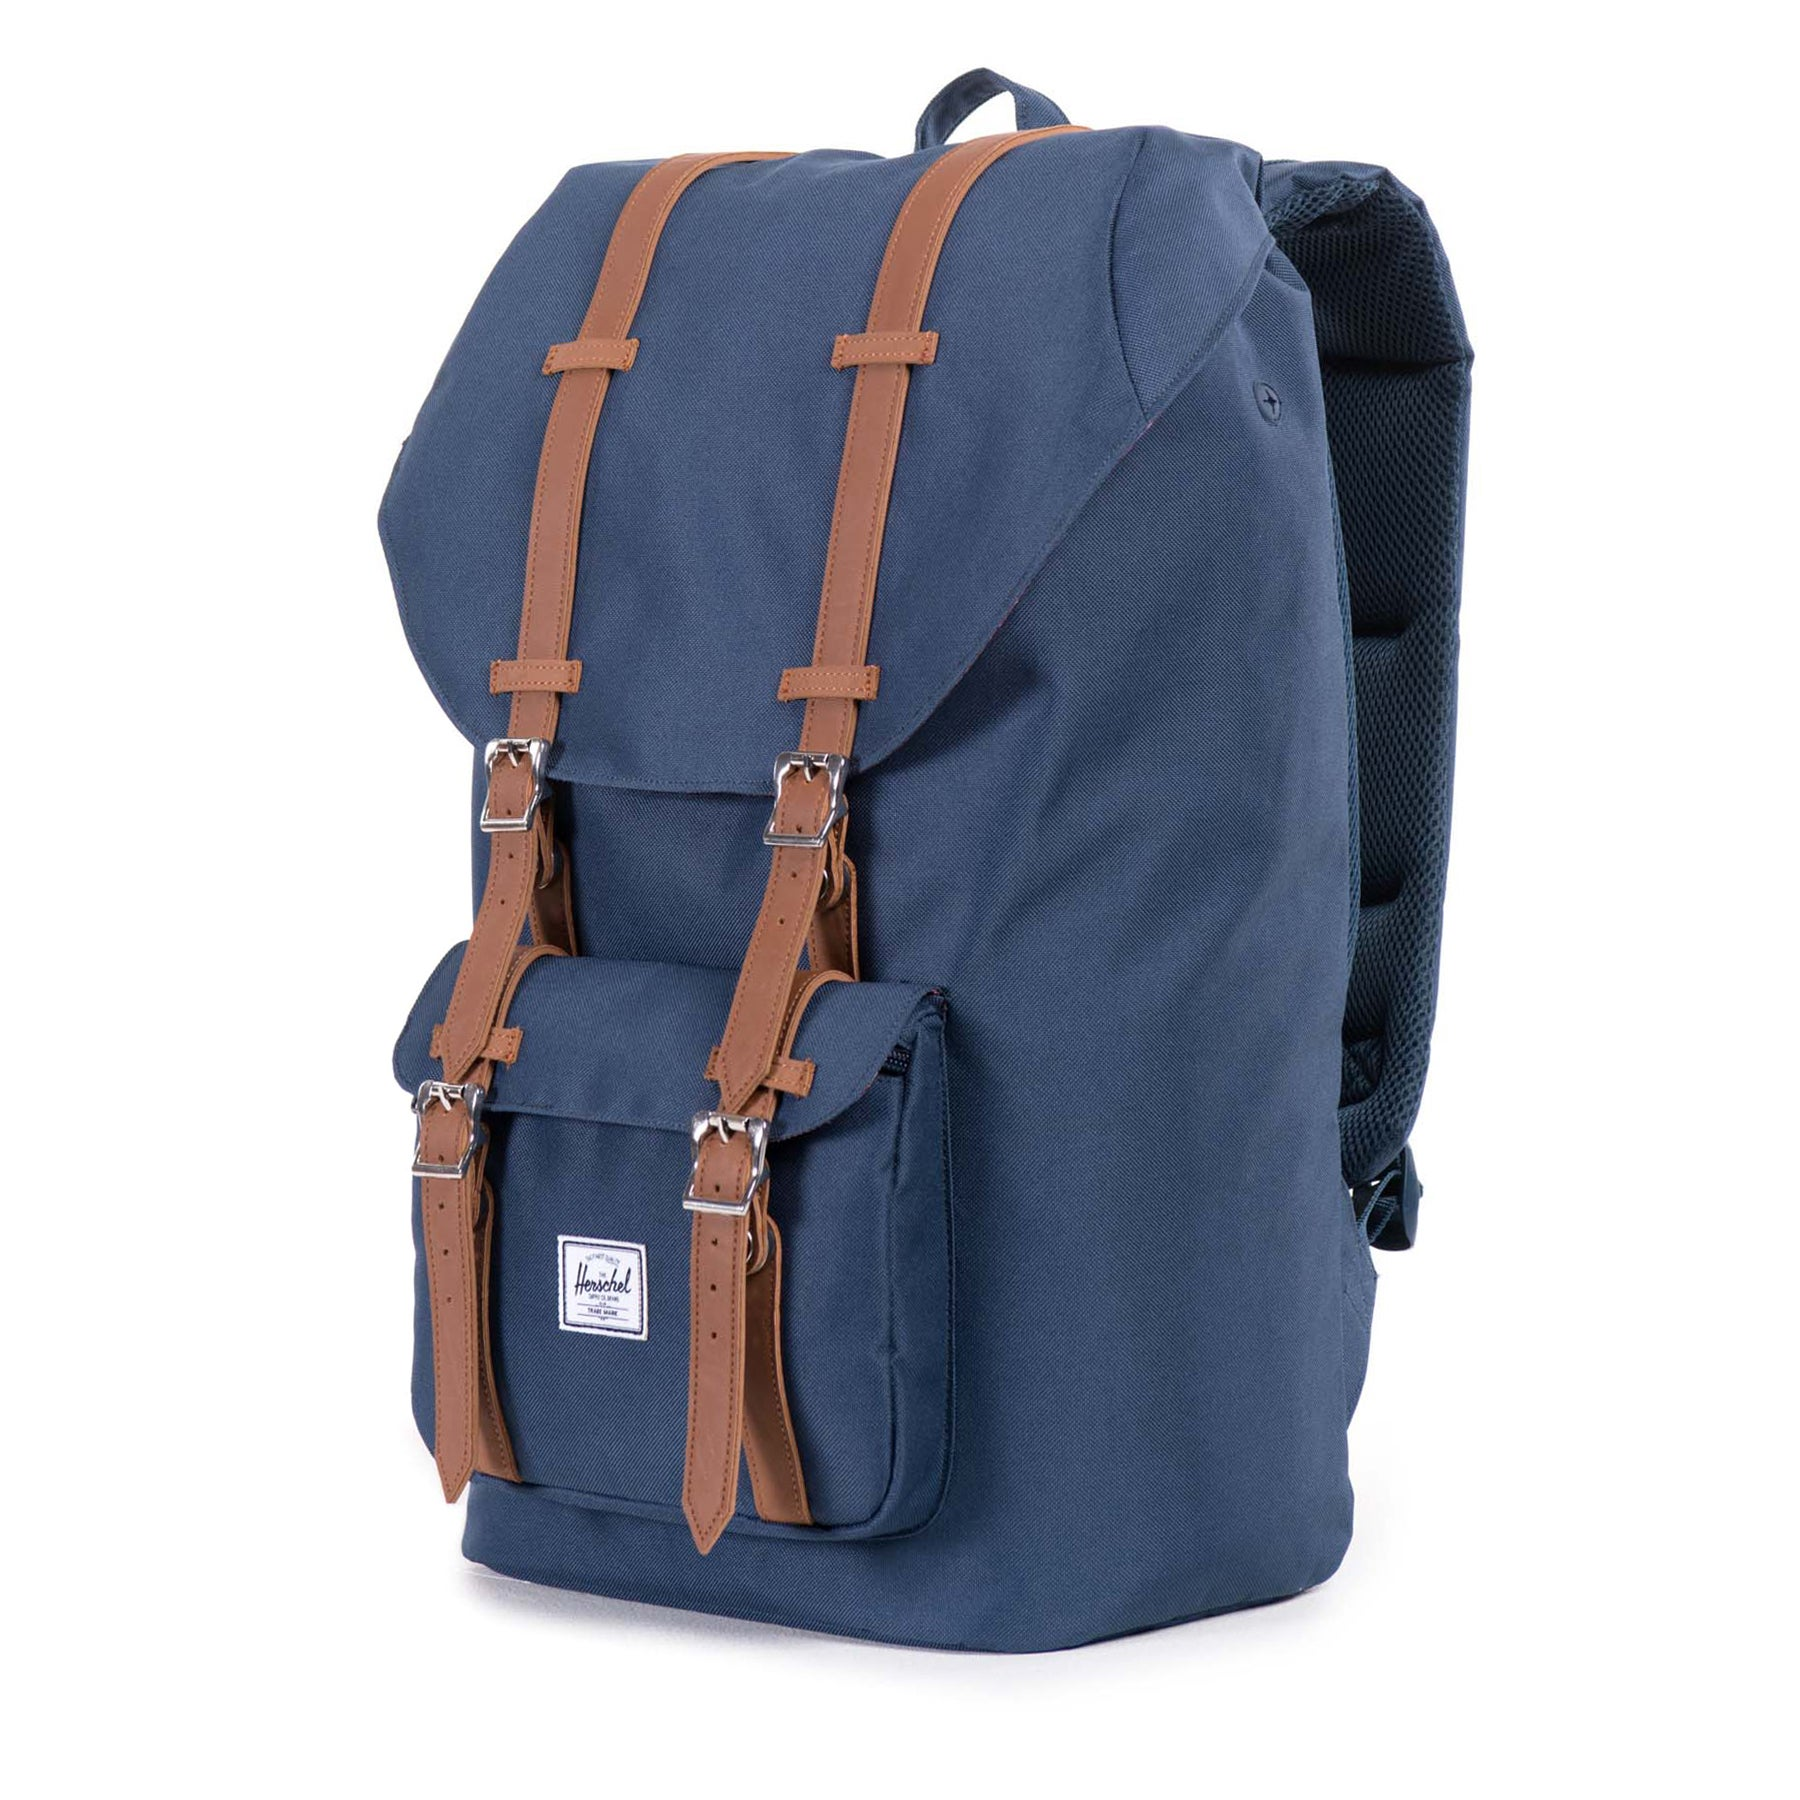 43d11cfe25 Herschel Little America Batoh available from Surfdome